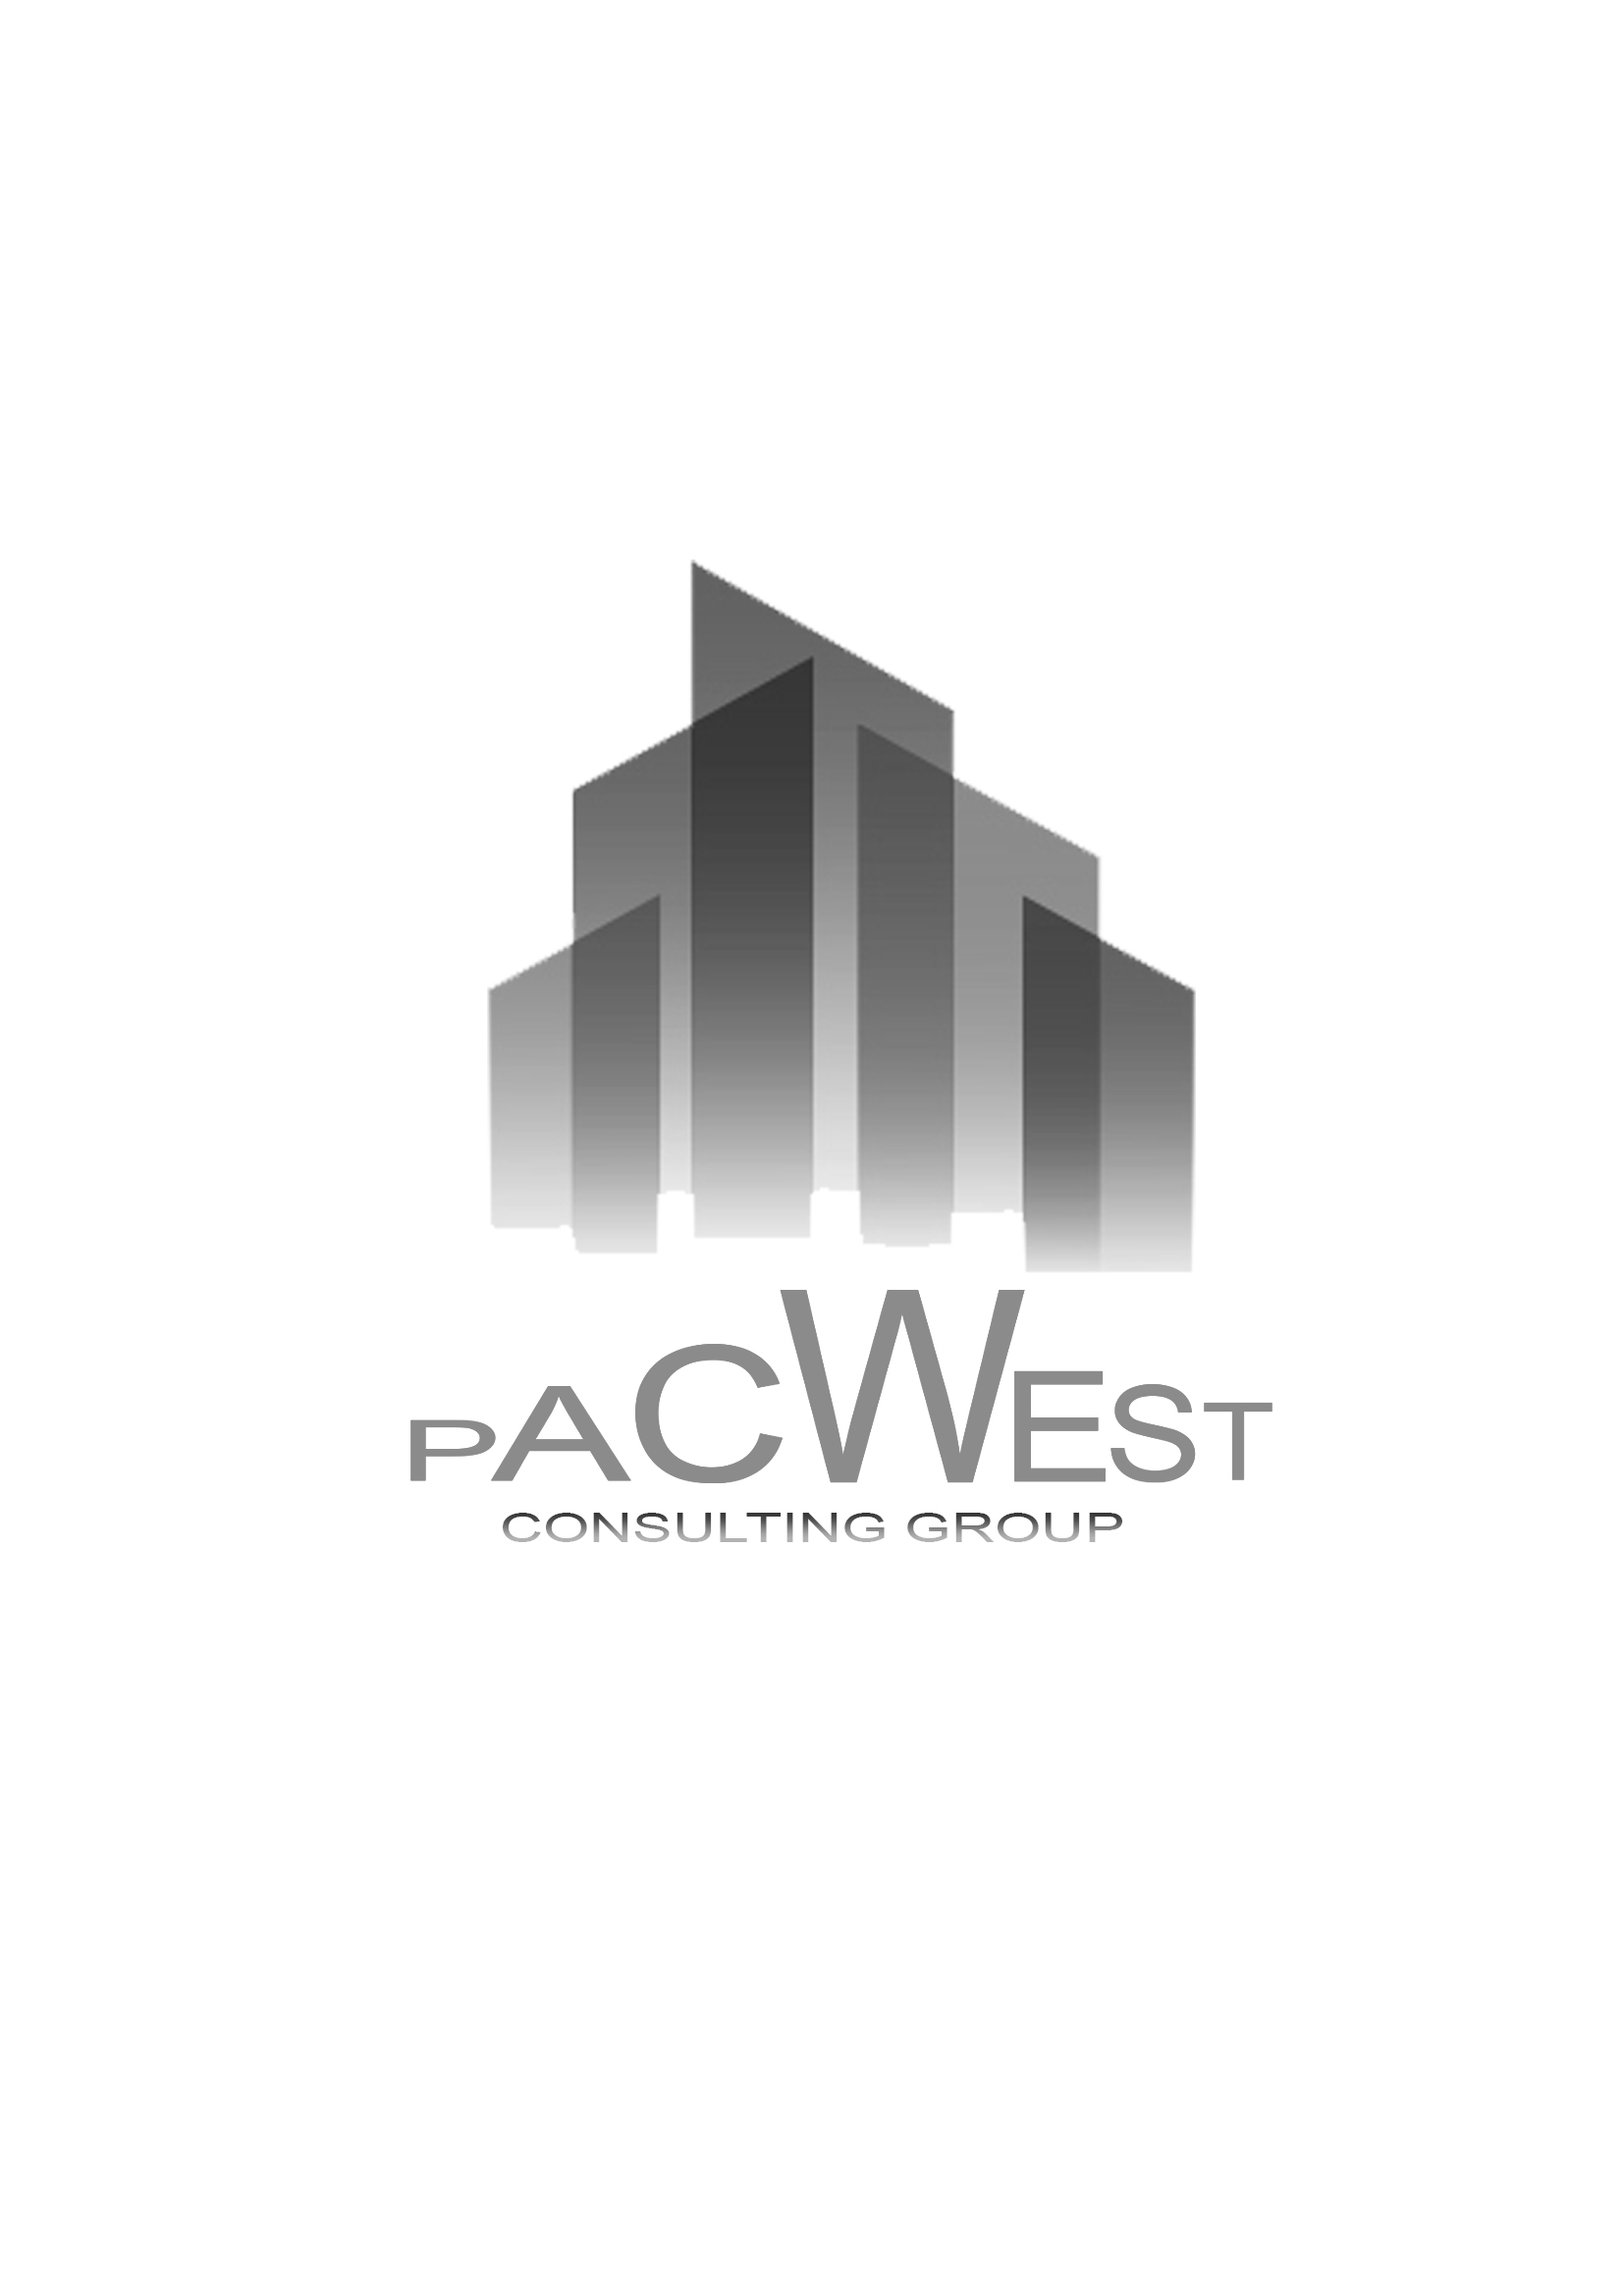 Logo Design by Niño rodel Adan - Entry No. 12 in the Logo Design Contest Imaginative Logo Design for Pacwest Consulting Group.